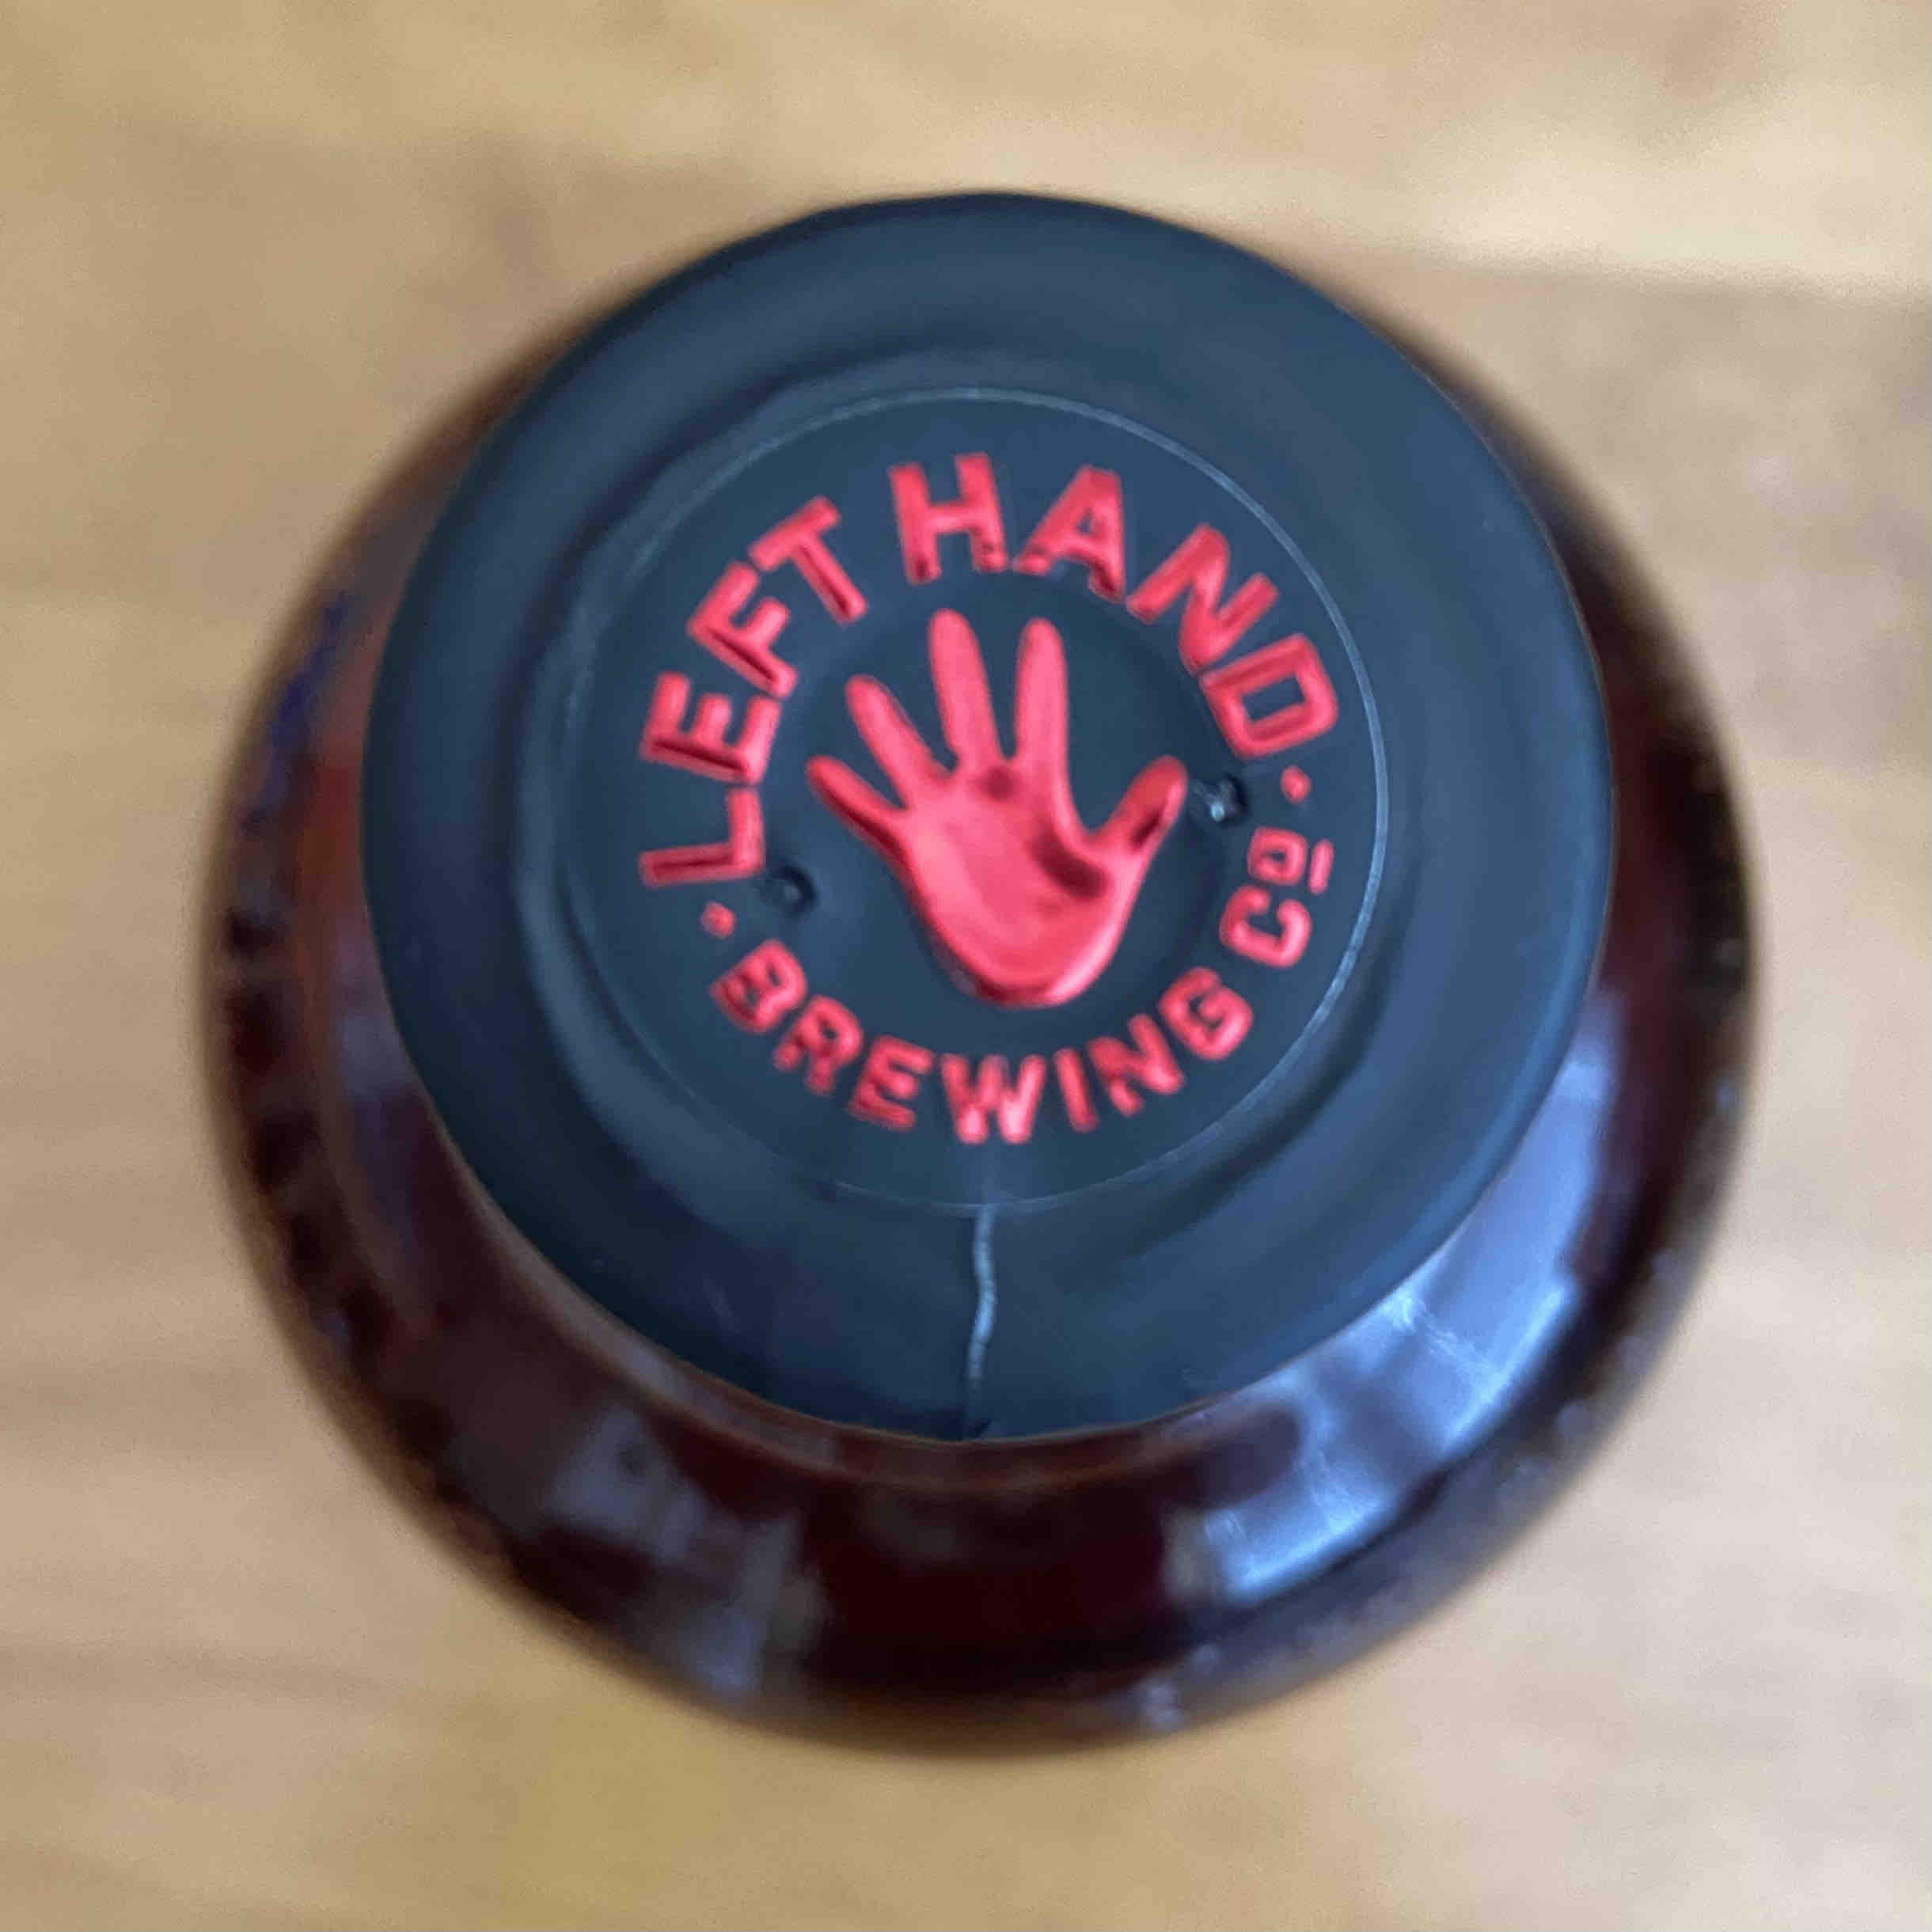 The cap on the bottle of Sinister Malt Whiskey from Left Hand Brewing and Foundry Distilling Co.